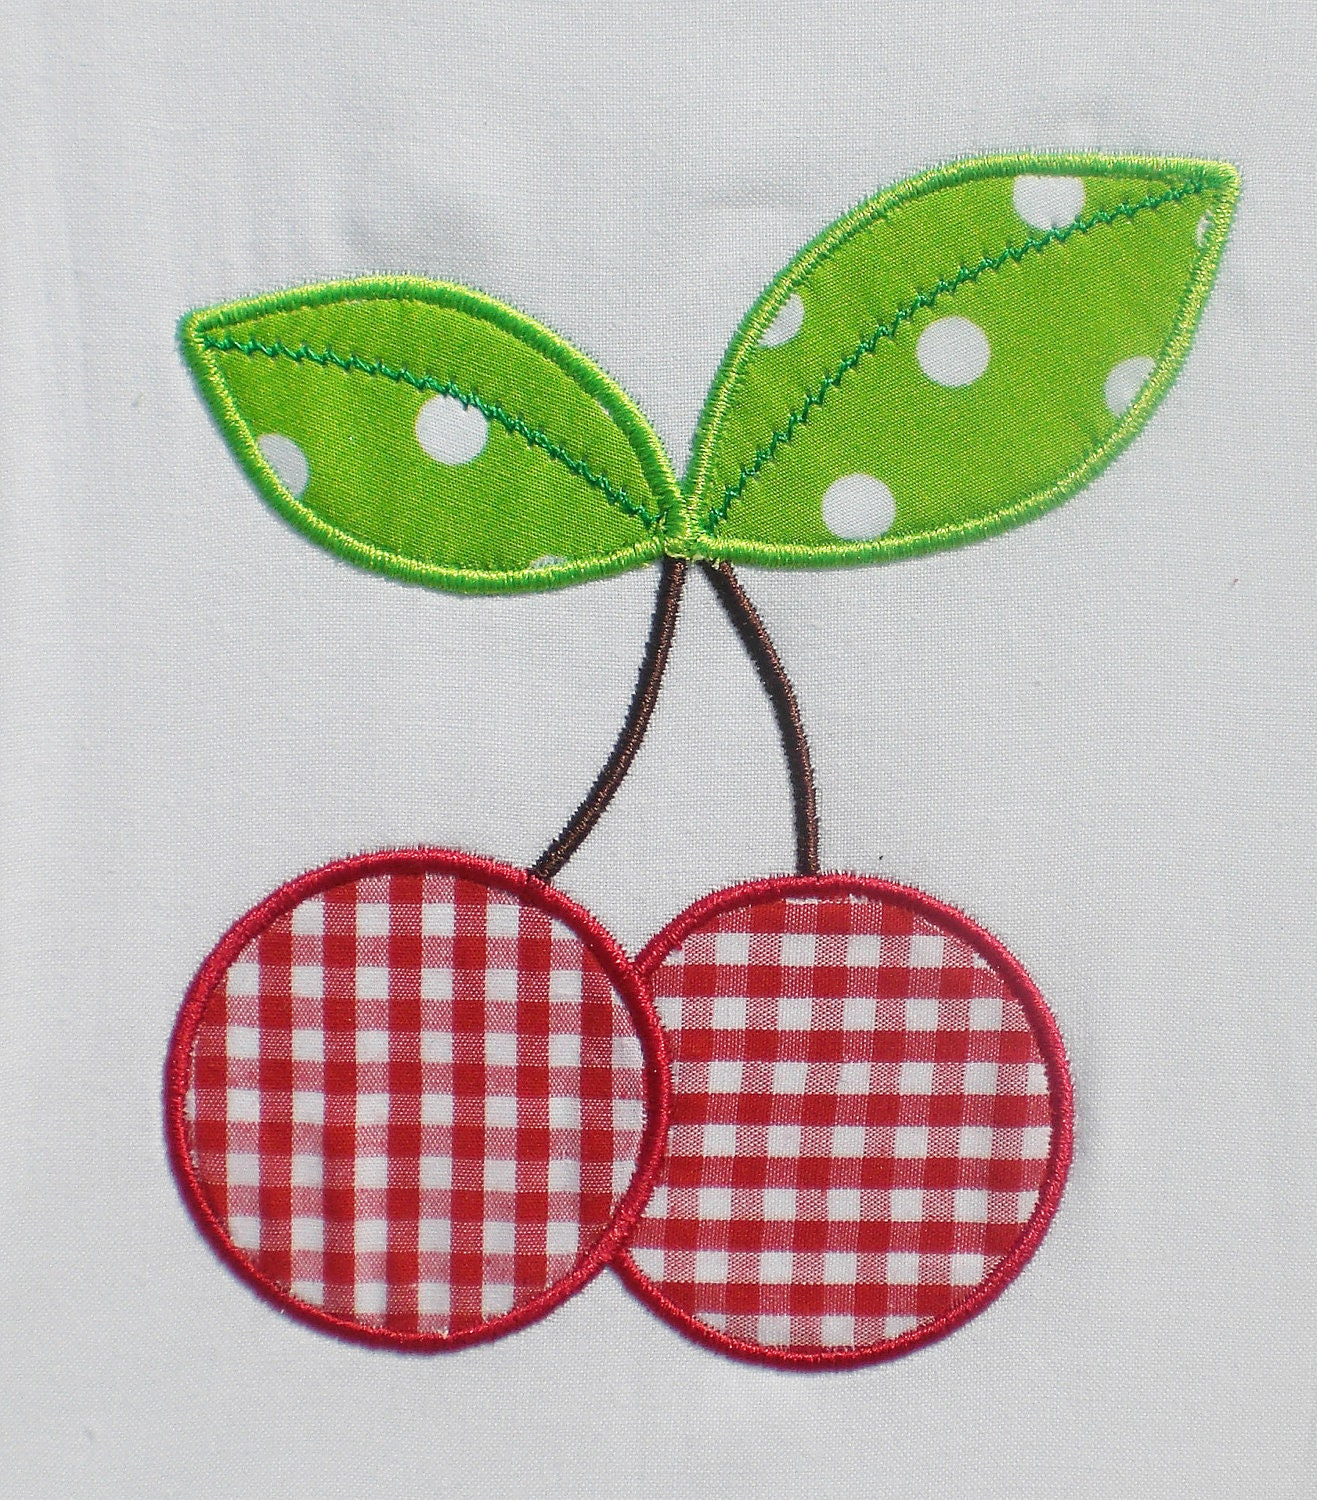 cherries embroidery design machine applique. Black Bedroom Furniture Sets. Home Design Ideas